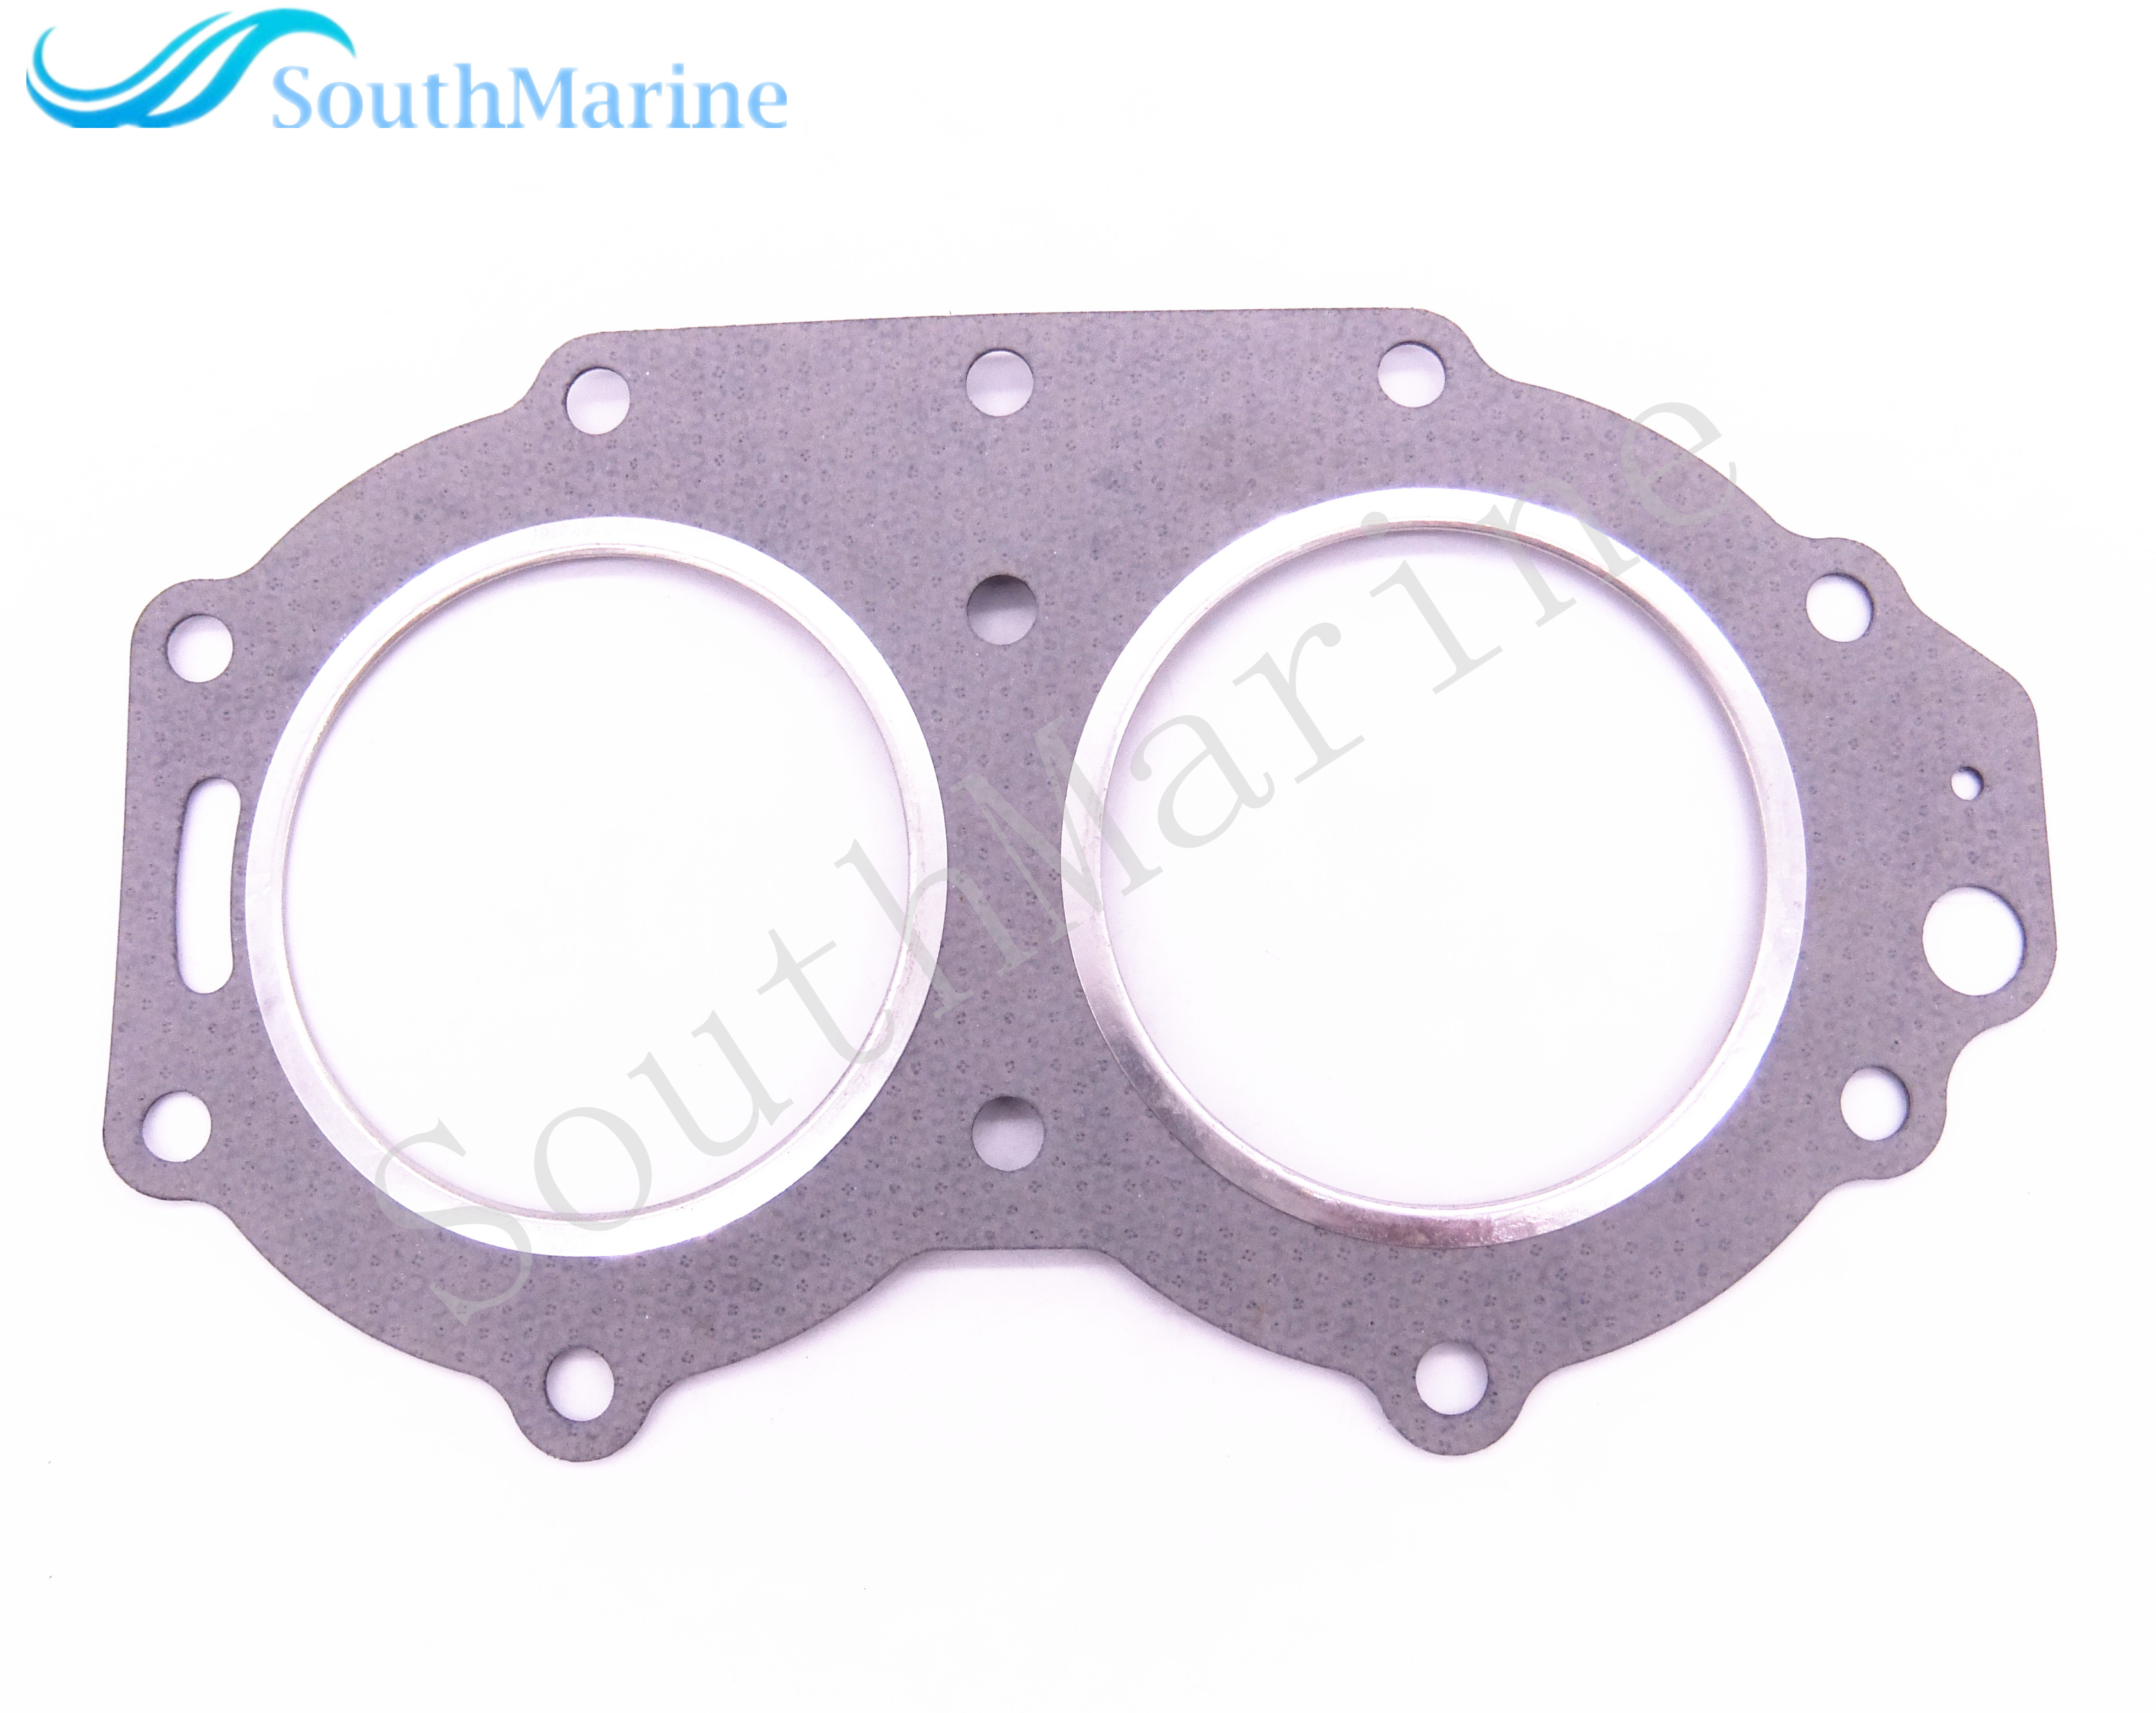 Boat Motor 66T-11181-A2 Cylinder Head Gasket for Yamaha 2-Stroke 40HP 40X E40X Outboard Engine